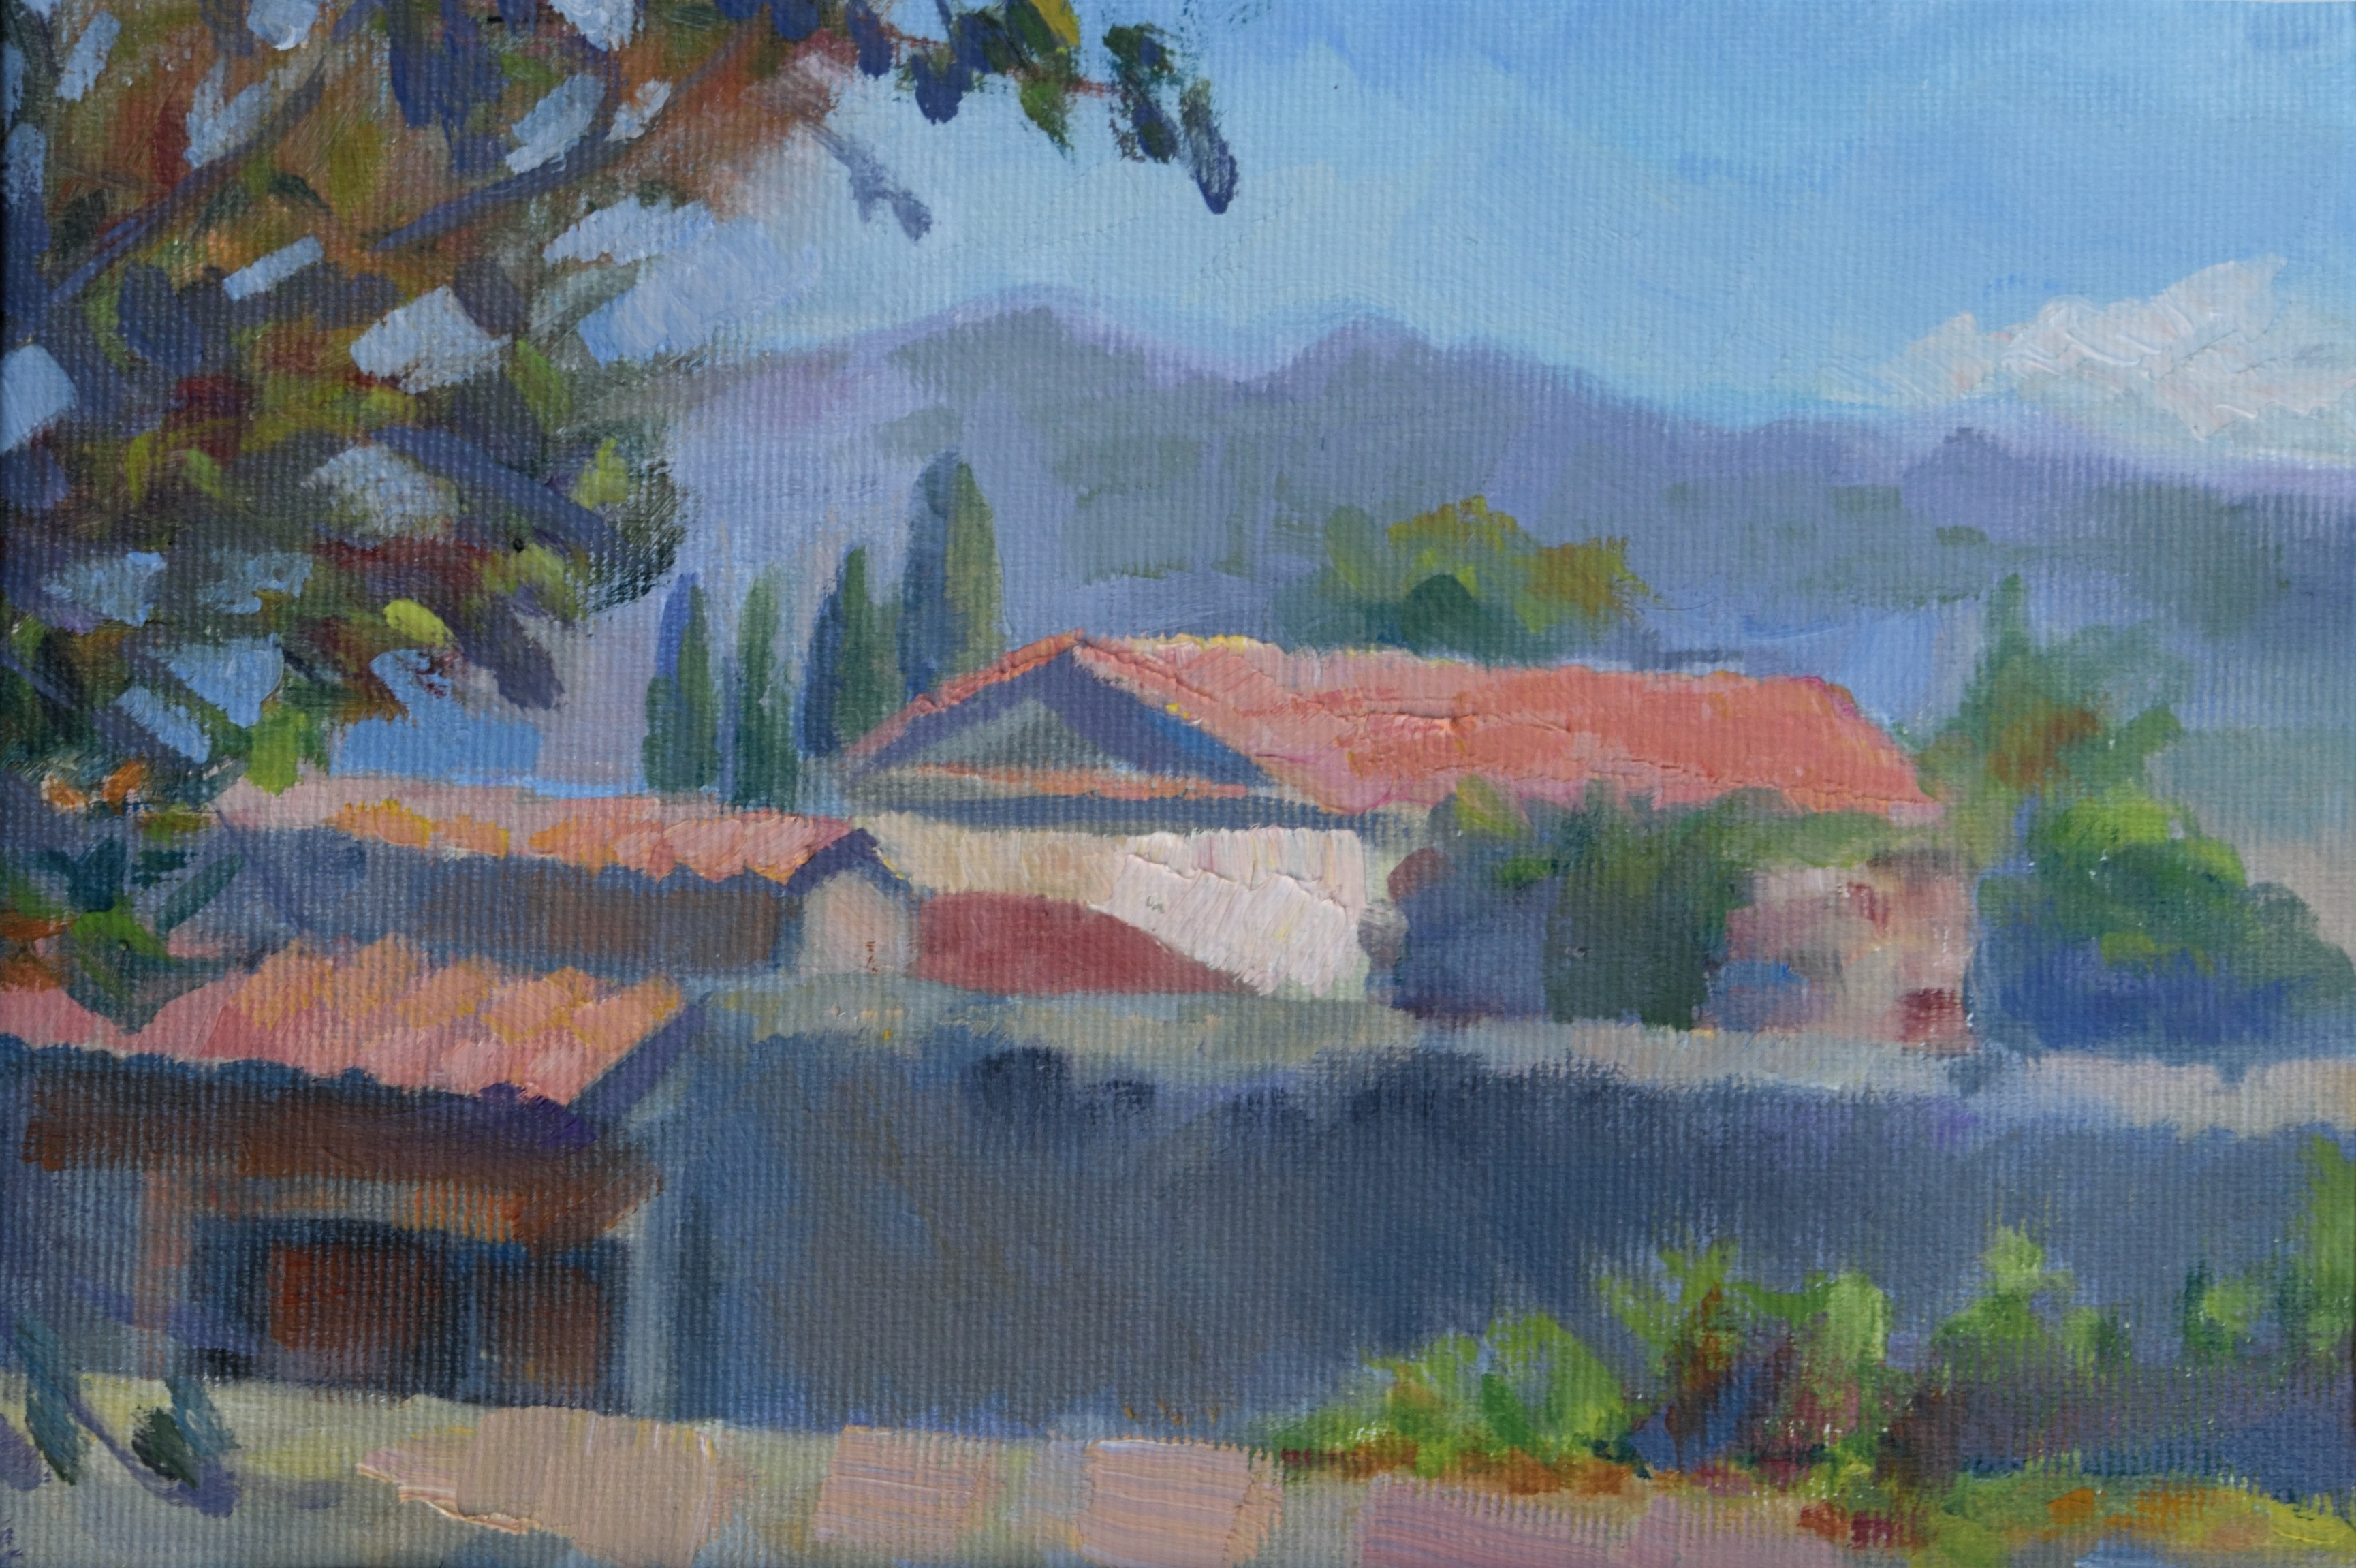 Via delle Porte Sante, oil on canvas, 15 x 23 cm, 2017